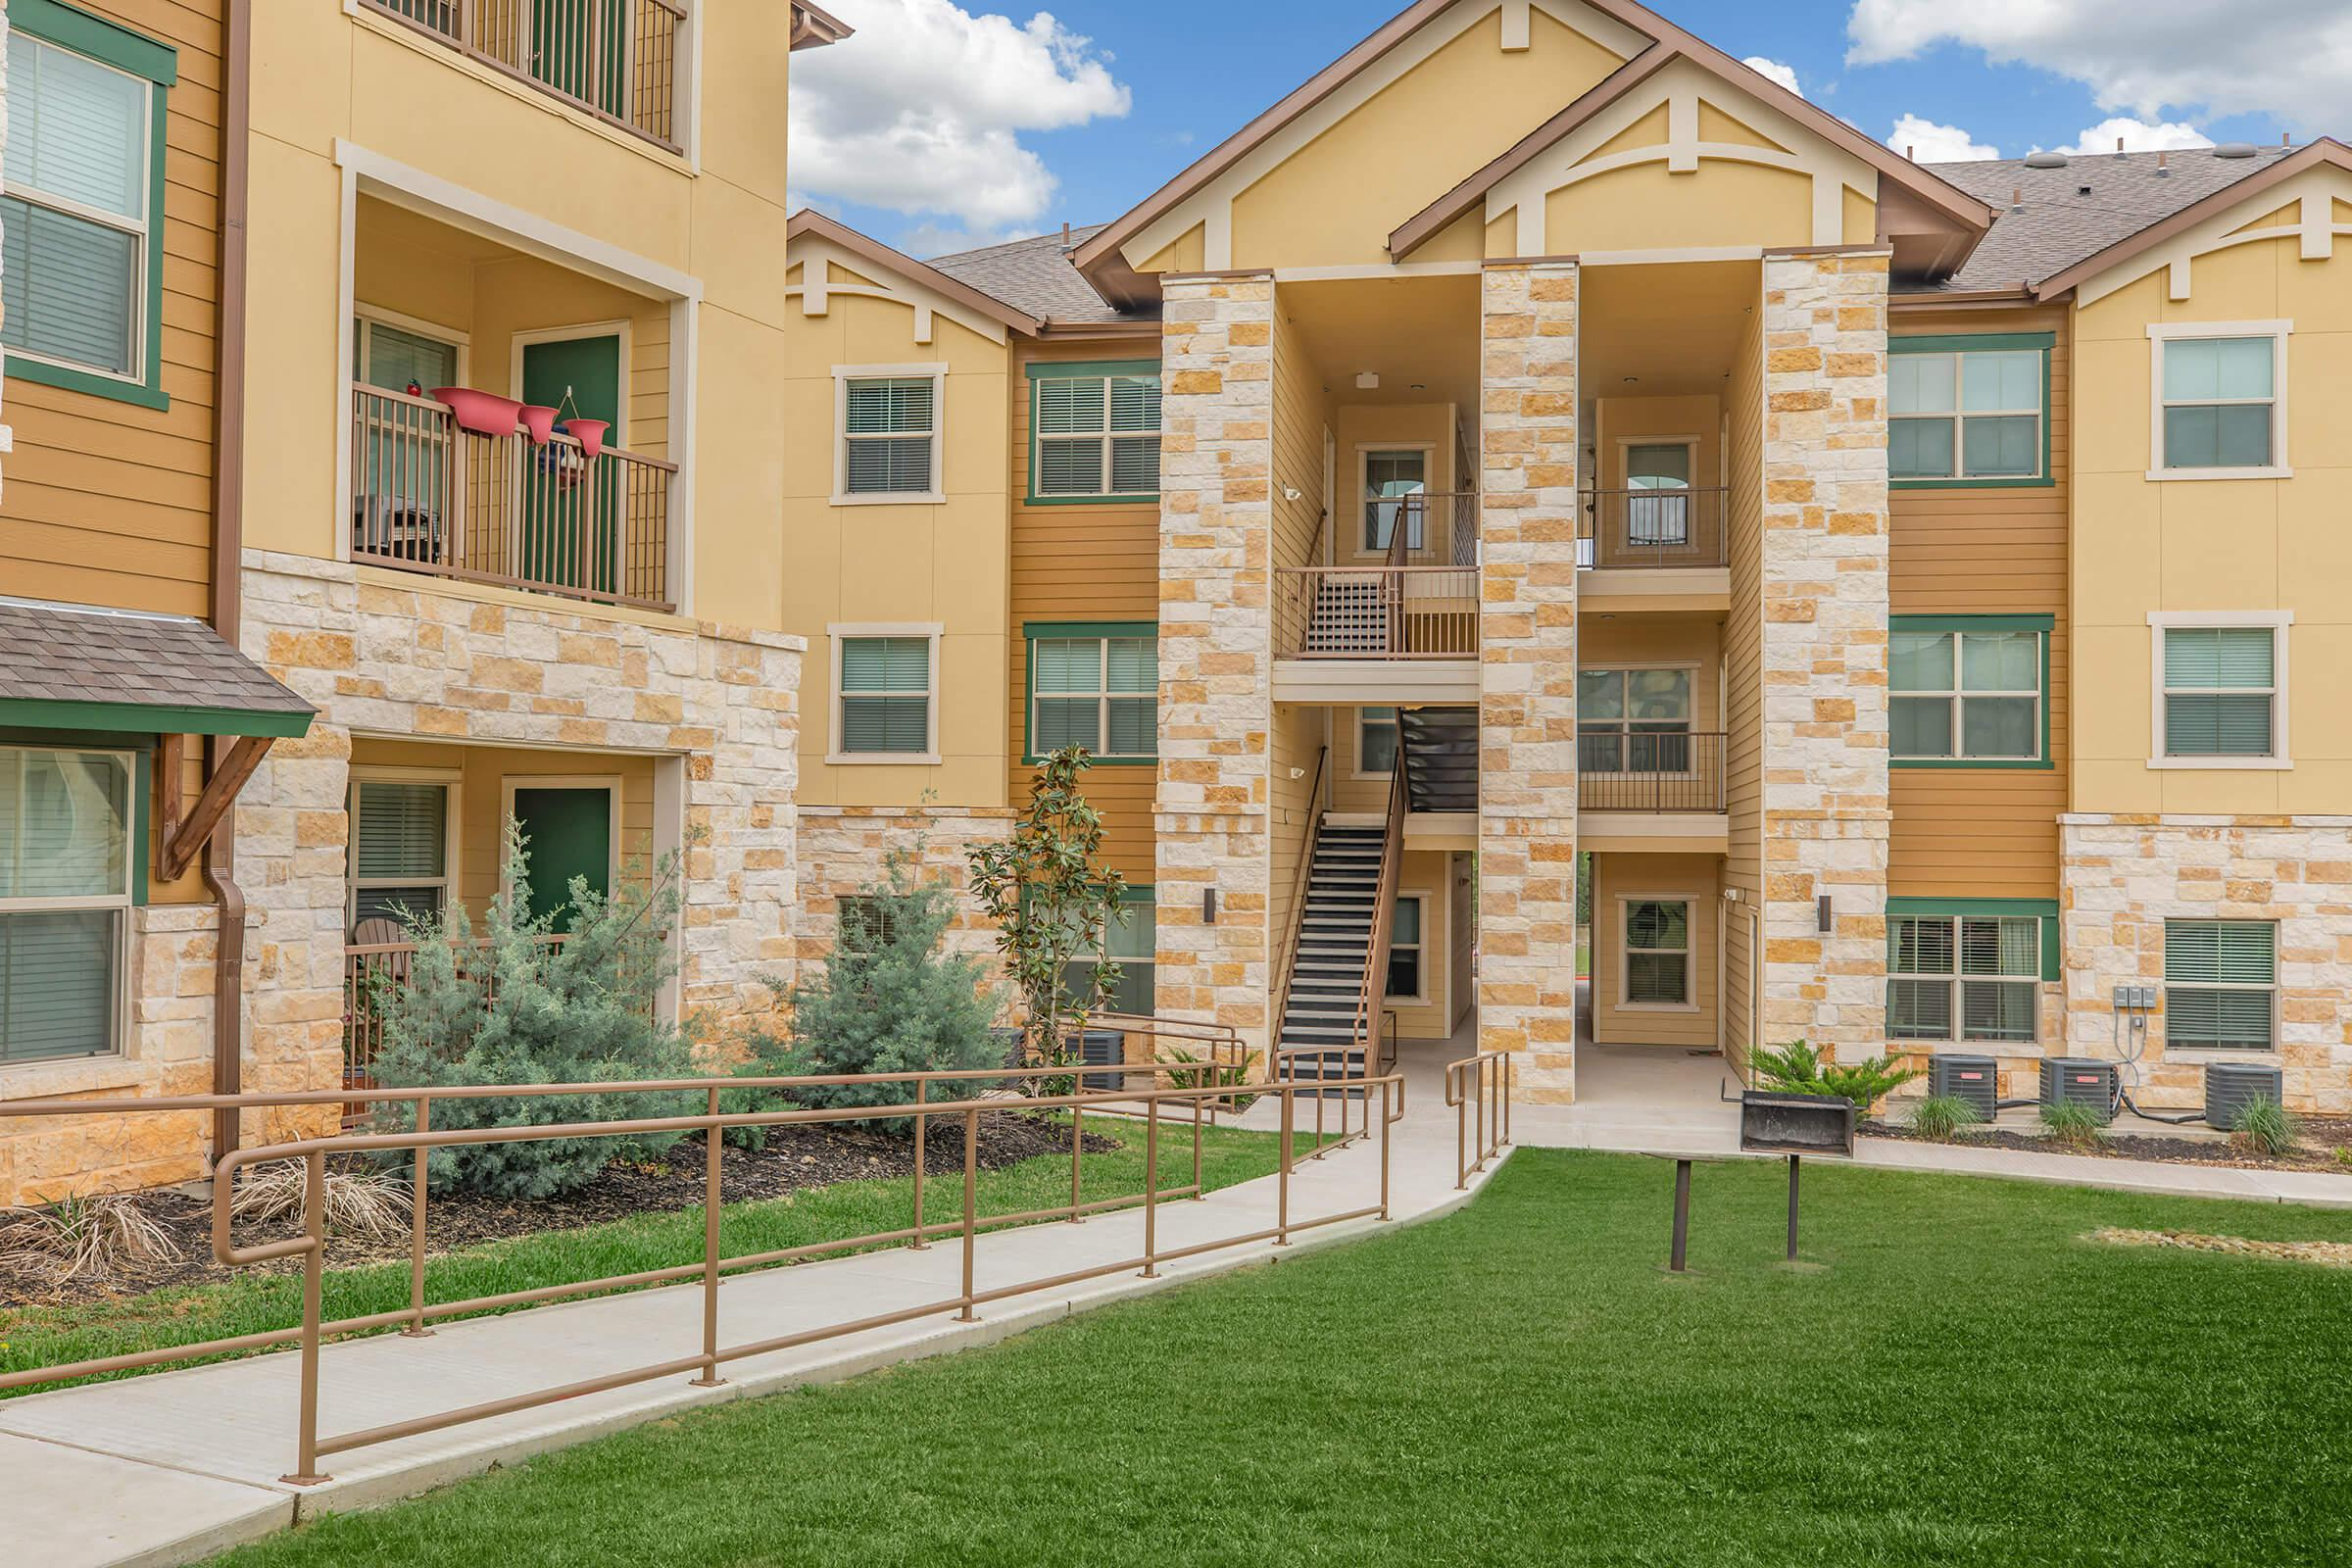 THE WEST HILL APARTMENTS IS A PET-FRIENDLY COMMUNITY